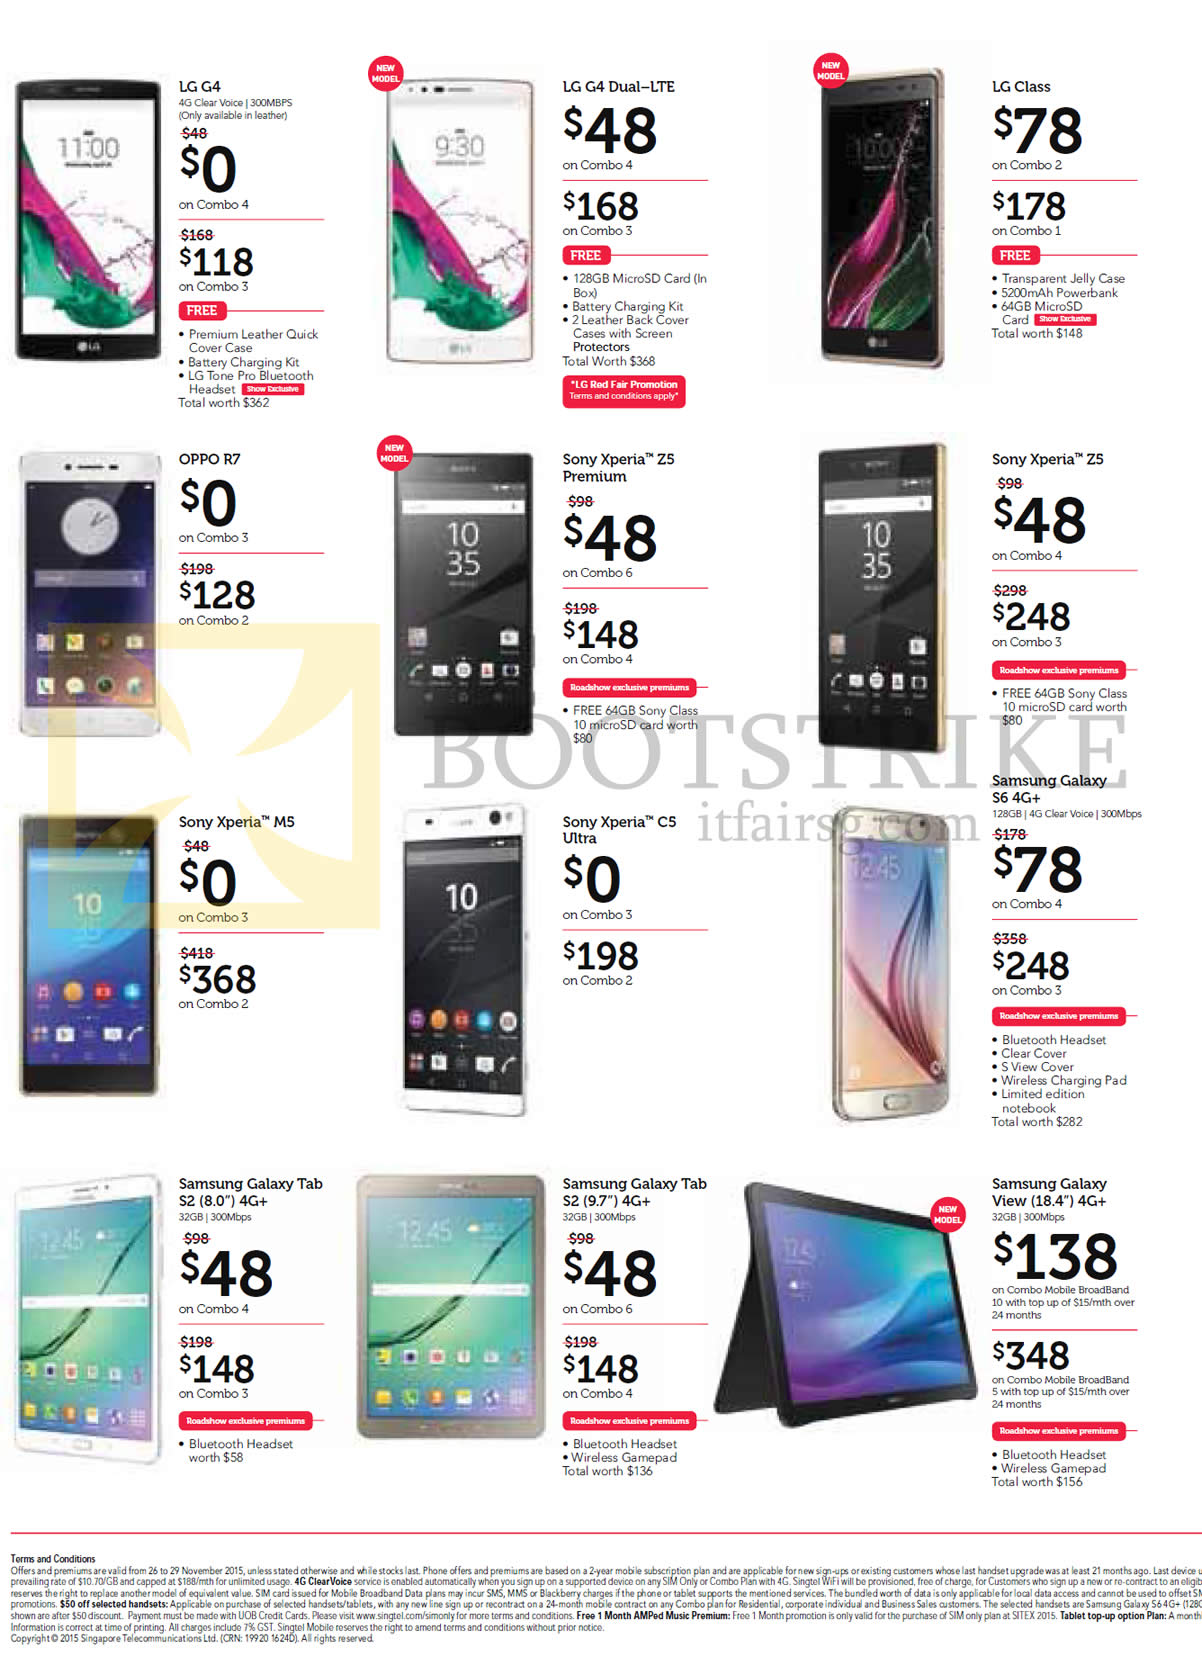 SITEX 2015 price list image brochure of Singtel Mobile Phones LG G4, G4 Dual LTE, Class, Oppo R7, Sony Xperia Z5 Premium, Z5, M5, C5 Ultra, Samsung Galaxy S6, Tab S2 8.0, Tab S2 9.7, View 18.4